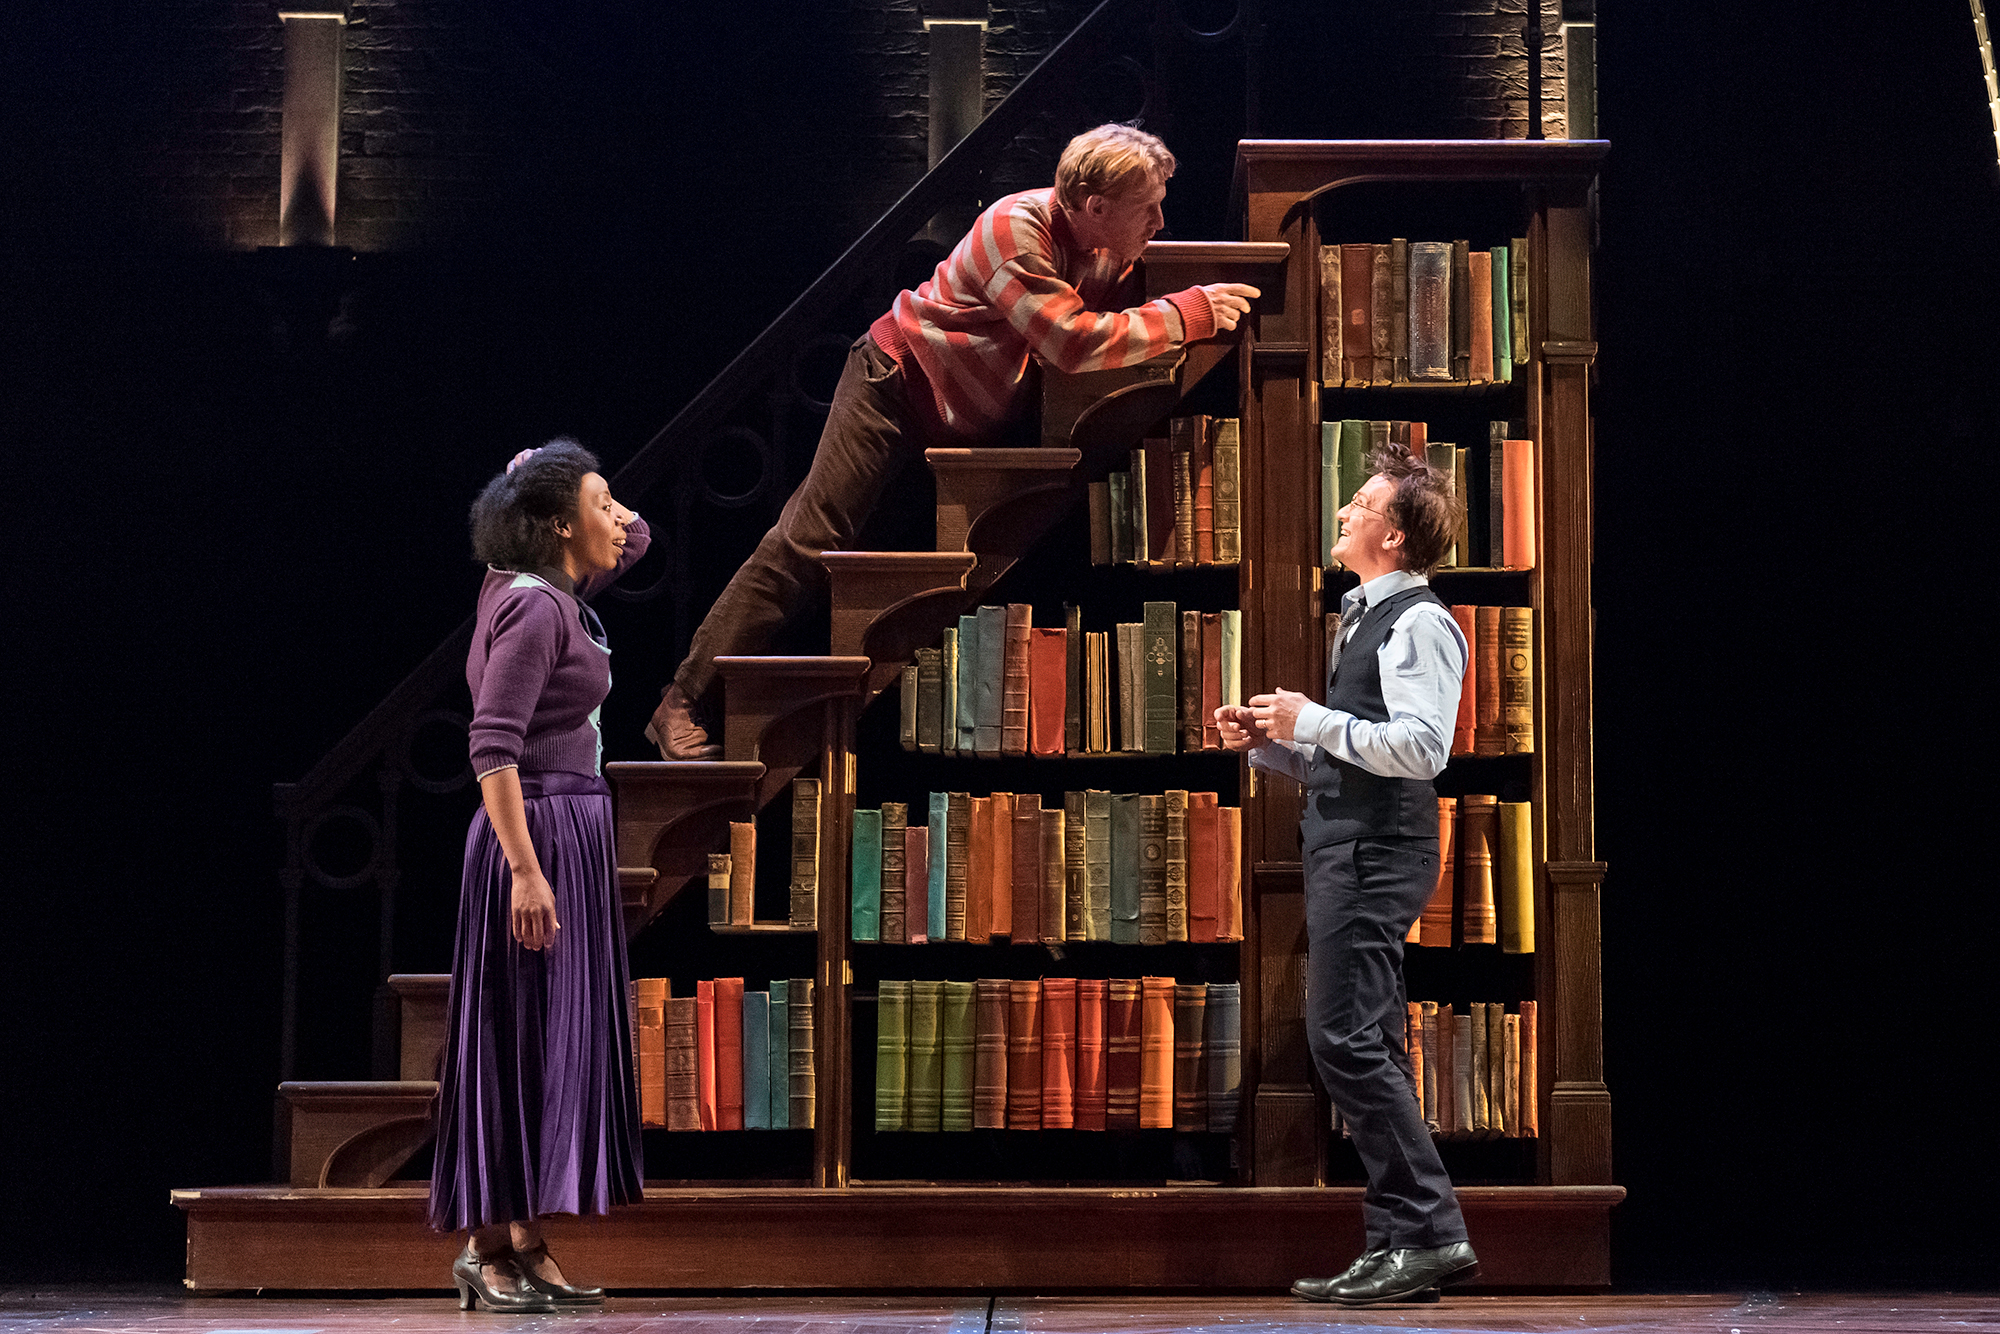 From left: Noma Dumezweni as Hermione Granger, Paul Thornley as Ron Weasley and Jamie Parker as Harry Potter in Harry Potter and the Cursed Child.